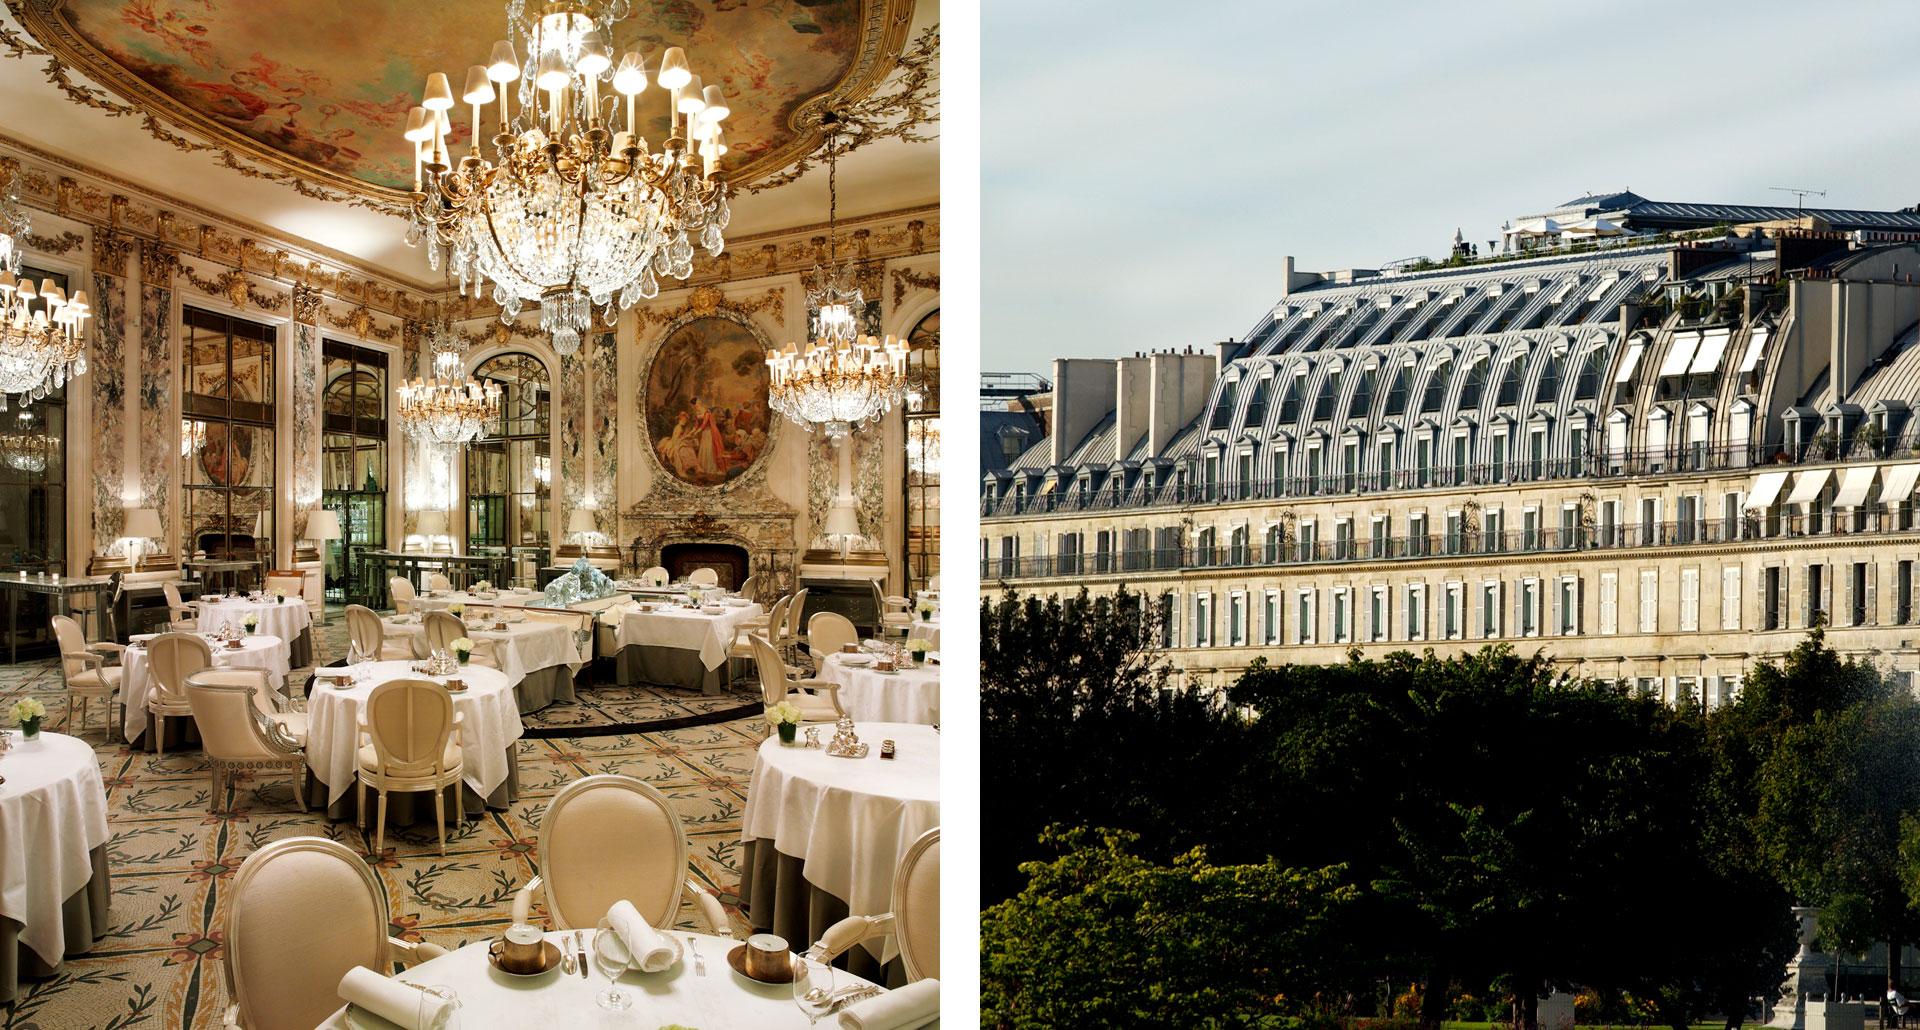 Le Meurice - boutique hotel in Paris